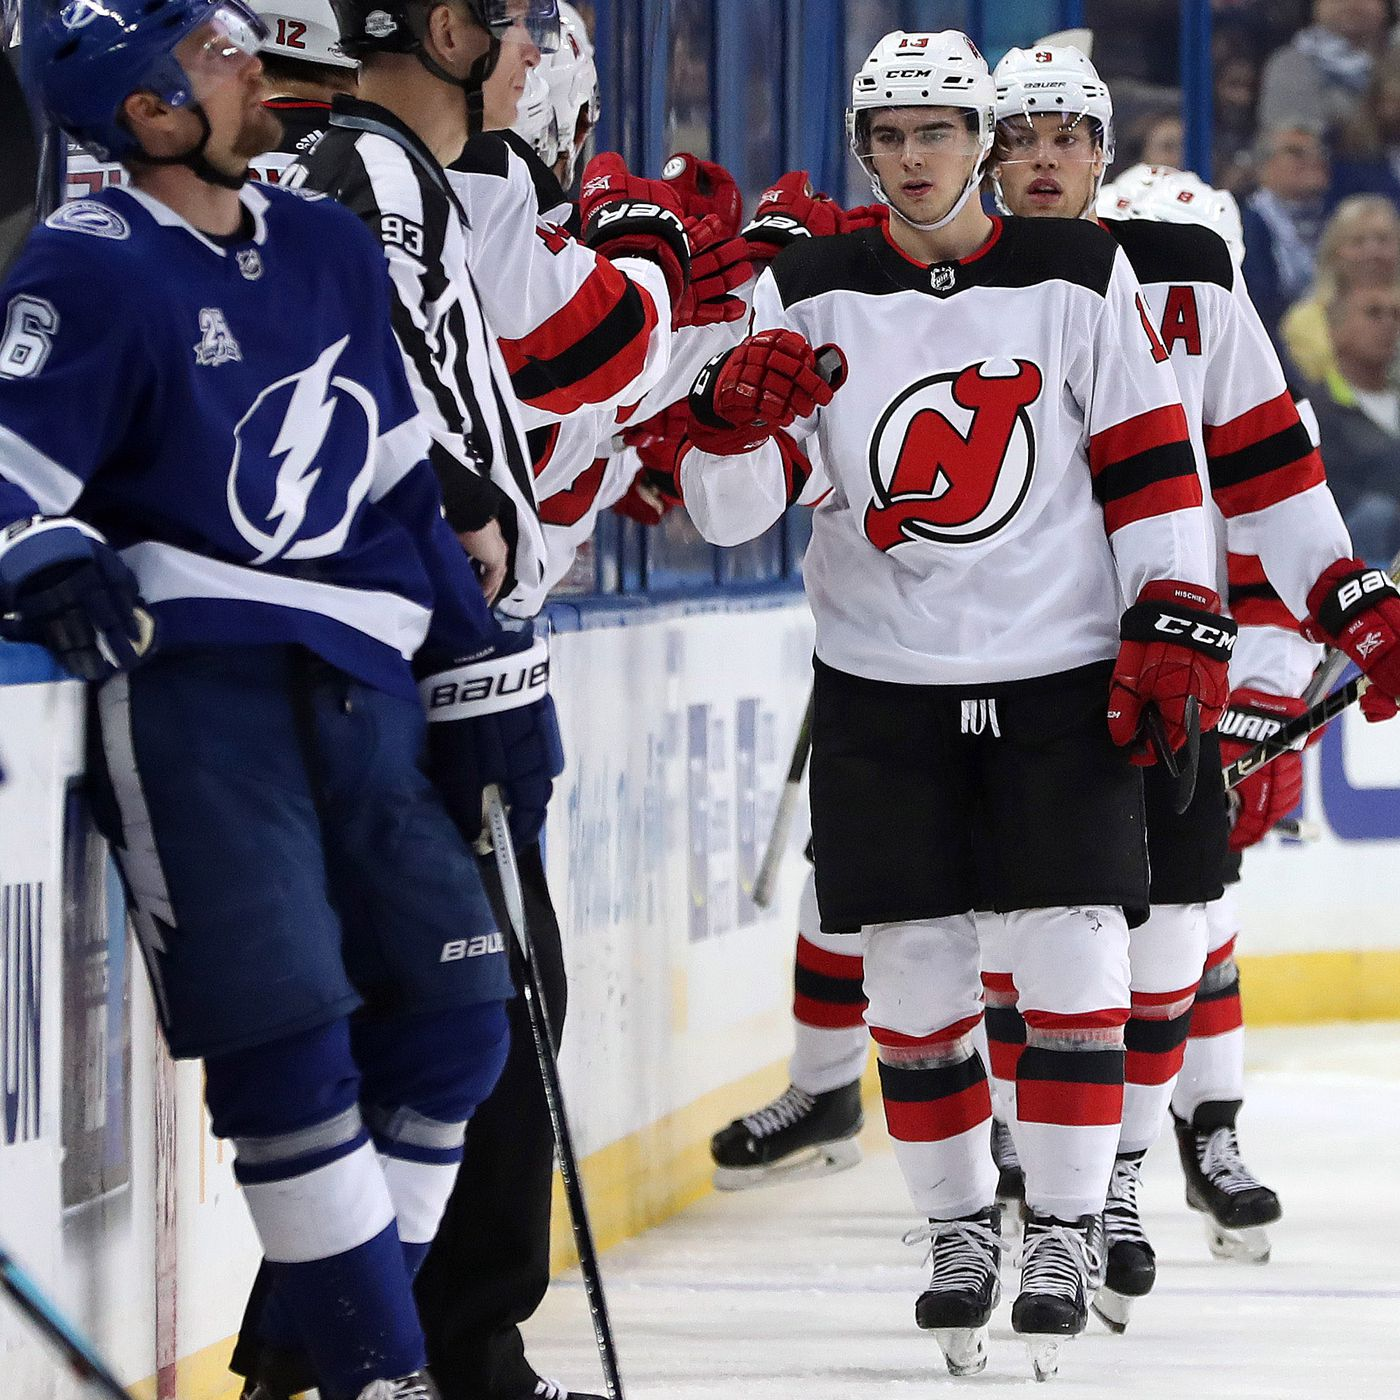 db121a87e New Jersey Devils to Play Tampa Bay Lightning in First Round of 2018 NHL  Playoffs - All About The Jersey